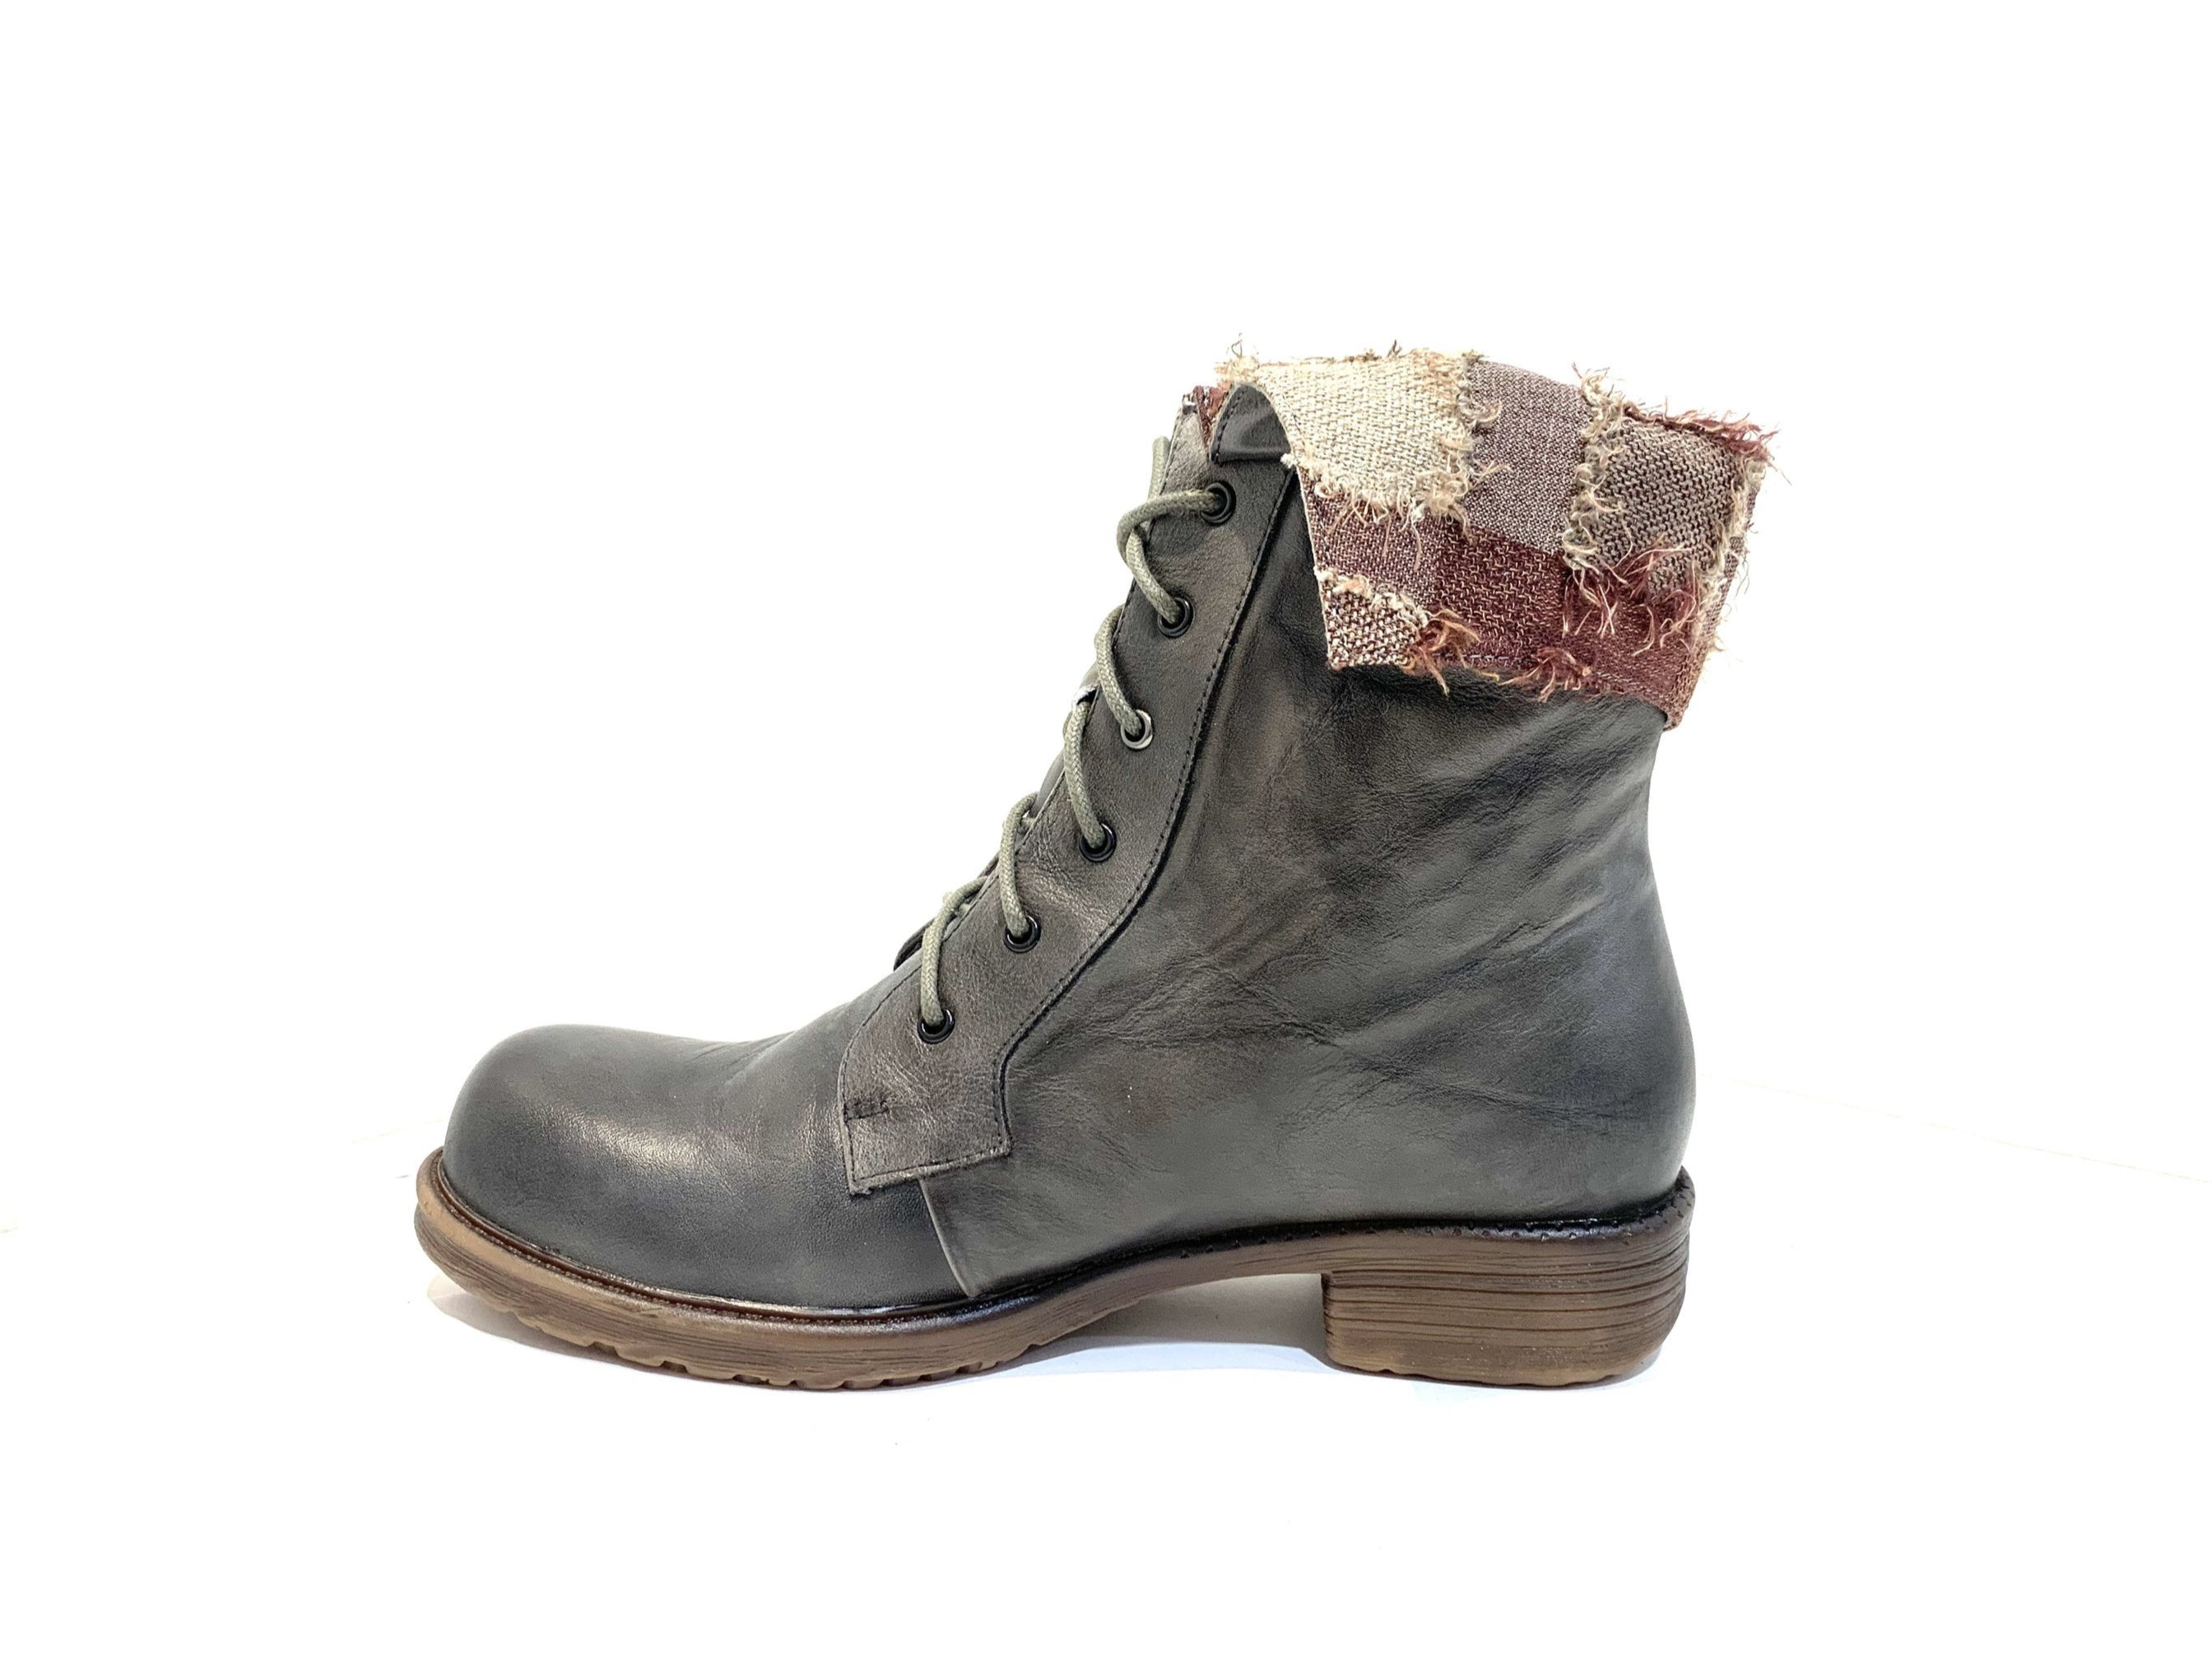 Minki Ladies Boots Cam Charcoal Grey Lace Up 6 Eyelet Boot